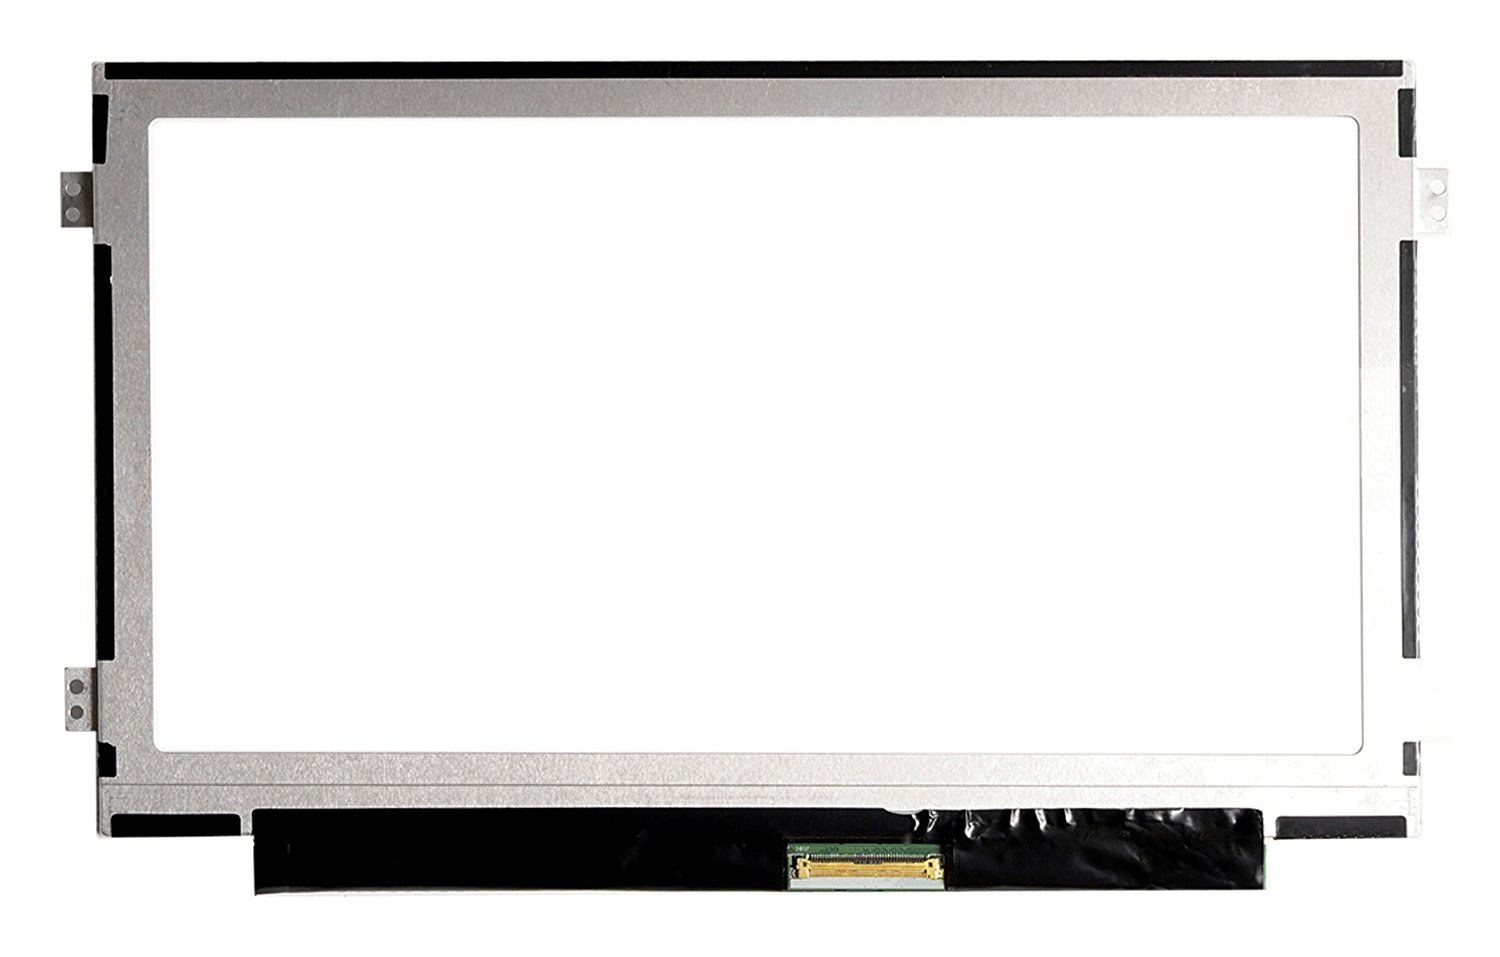 LTN101NT05-U03 NEW 10.1 WSVGA Ultra Thin/Slim LED LCD Screen LTN101NT05-T01LTN101NT05-U03 NEW 10.1 WSVGA Ultra Thin/Slim LED LCD Screen LTN101NT05-T01